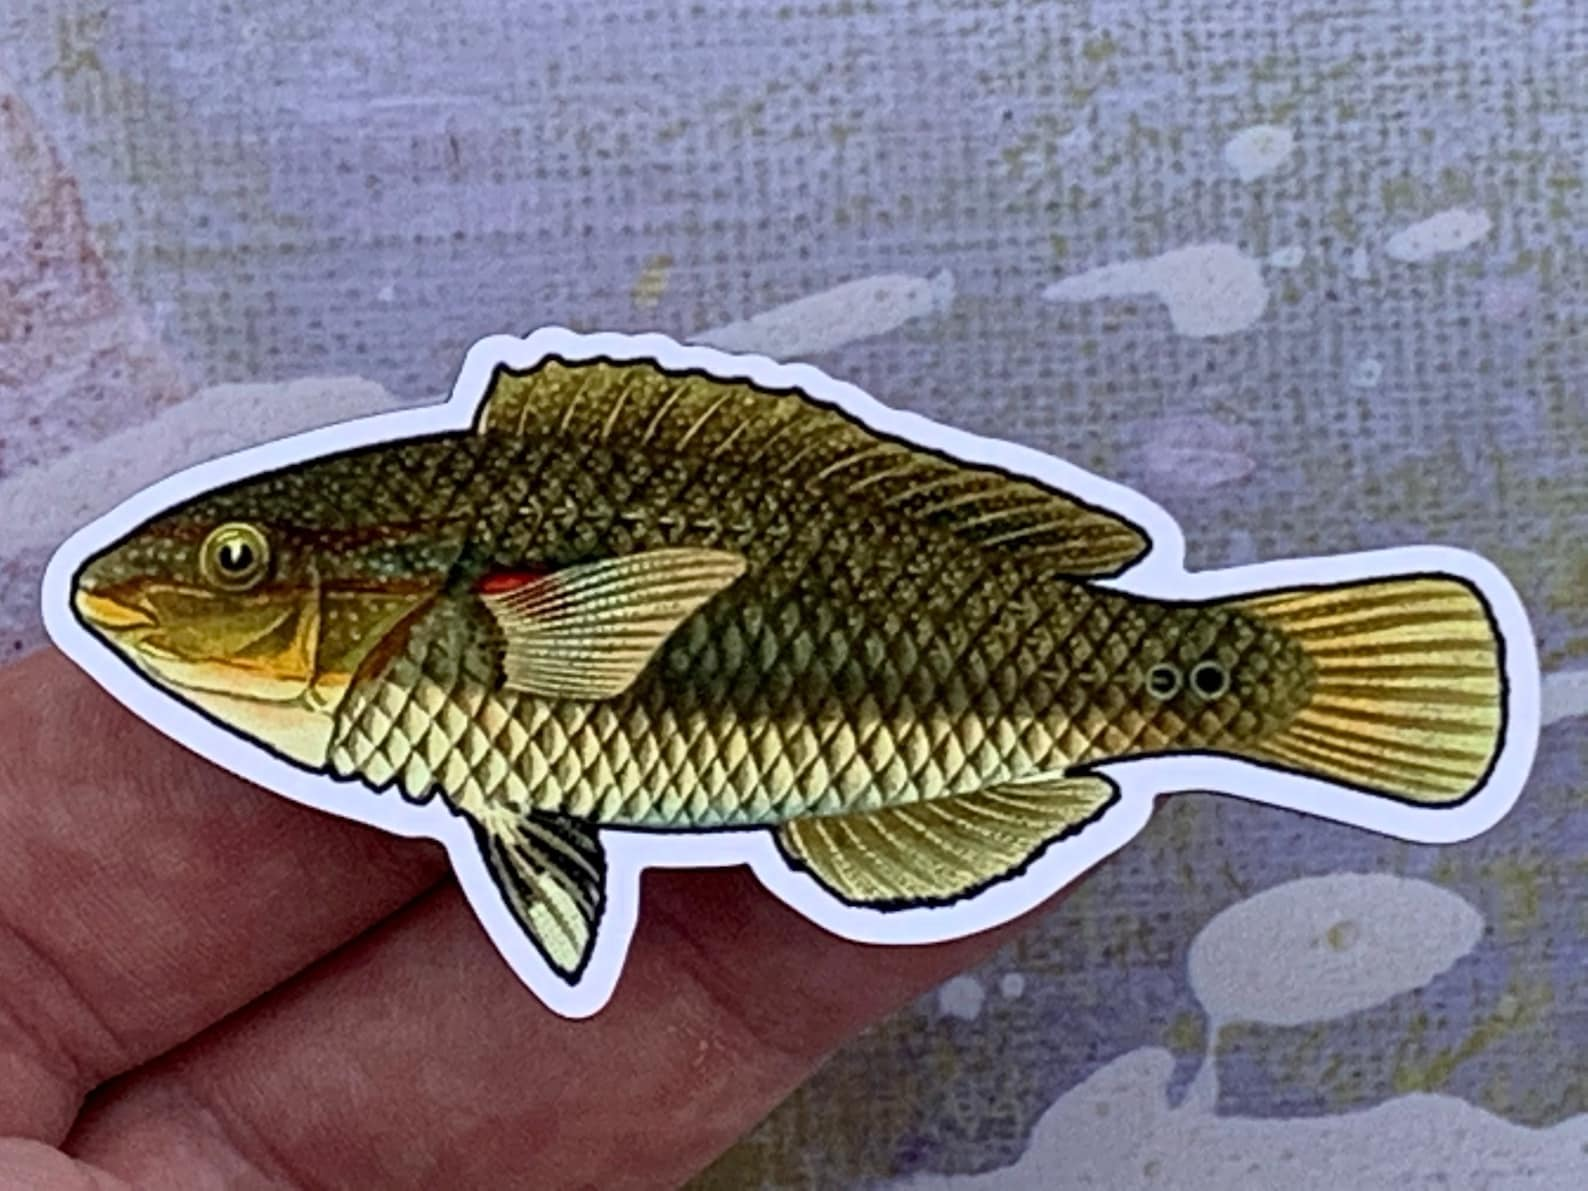 Photo of a red shoulder wrasse magnet in someone's hand (but this one is brown)